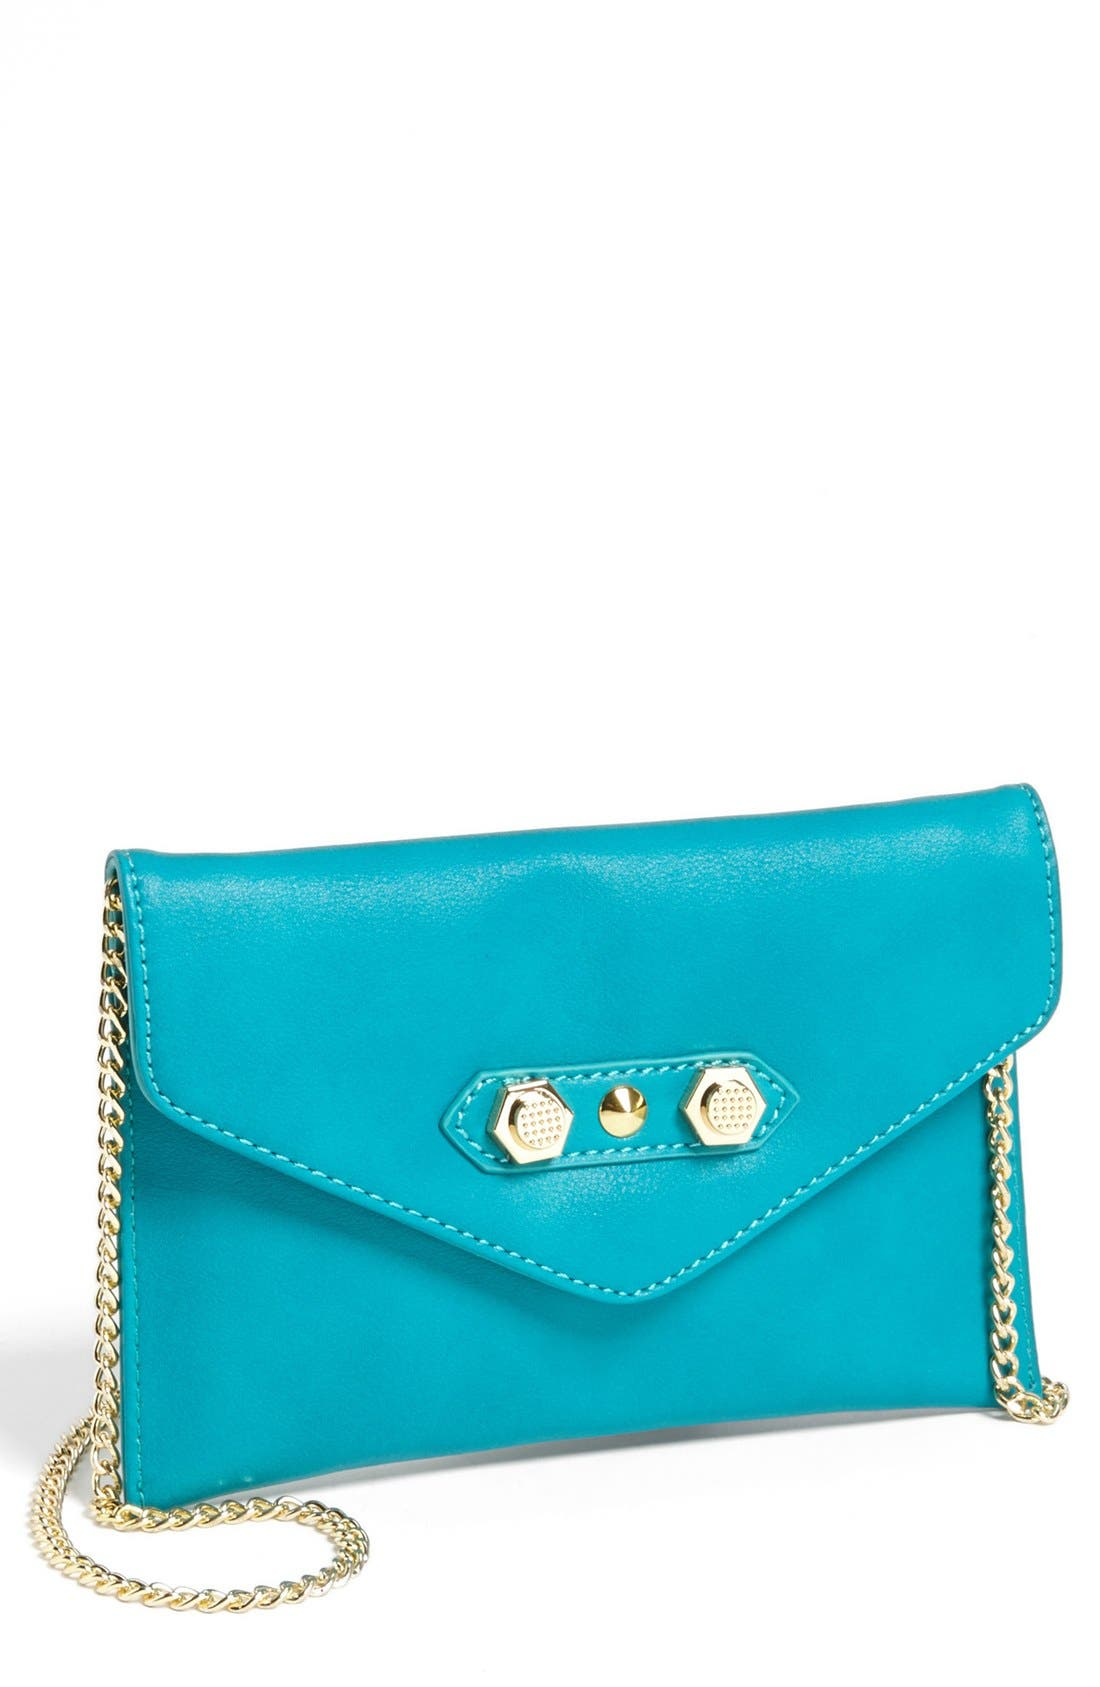 Alternate Image 1 Selected - Danielle Nicole 'Tina' Faux Leather Crossbody Pouch